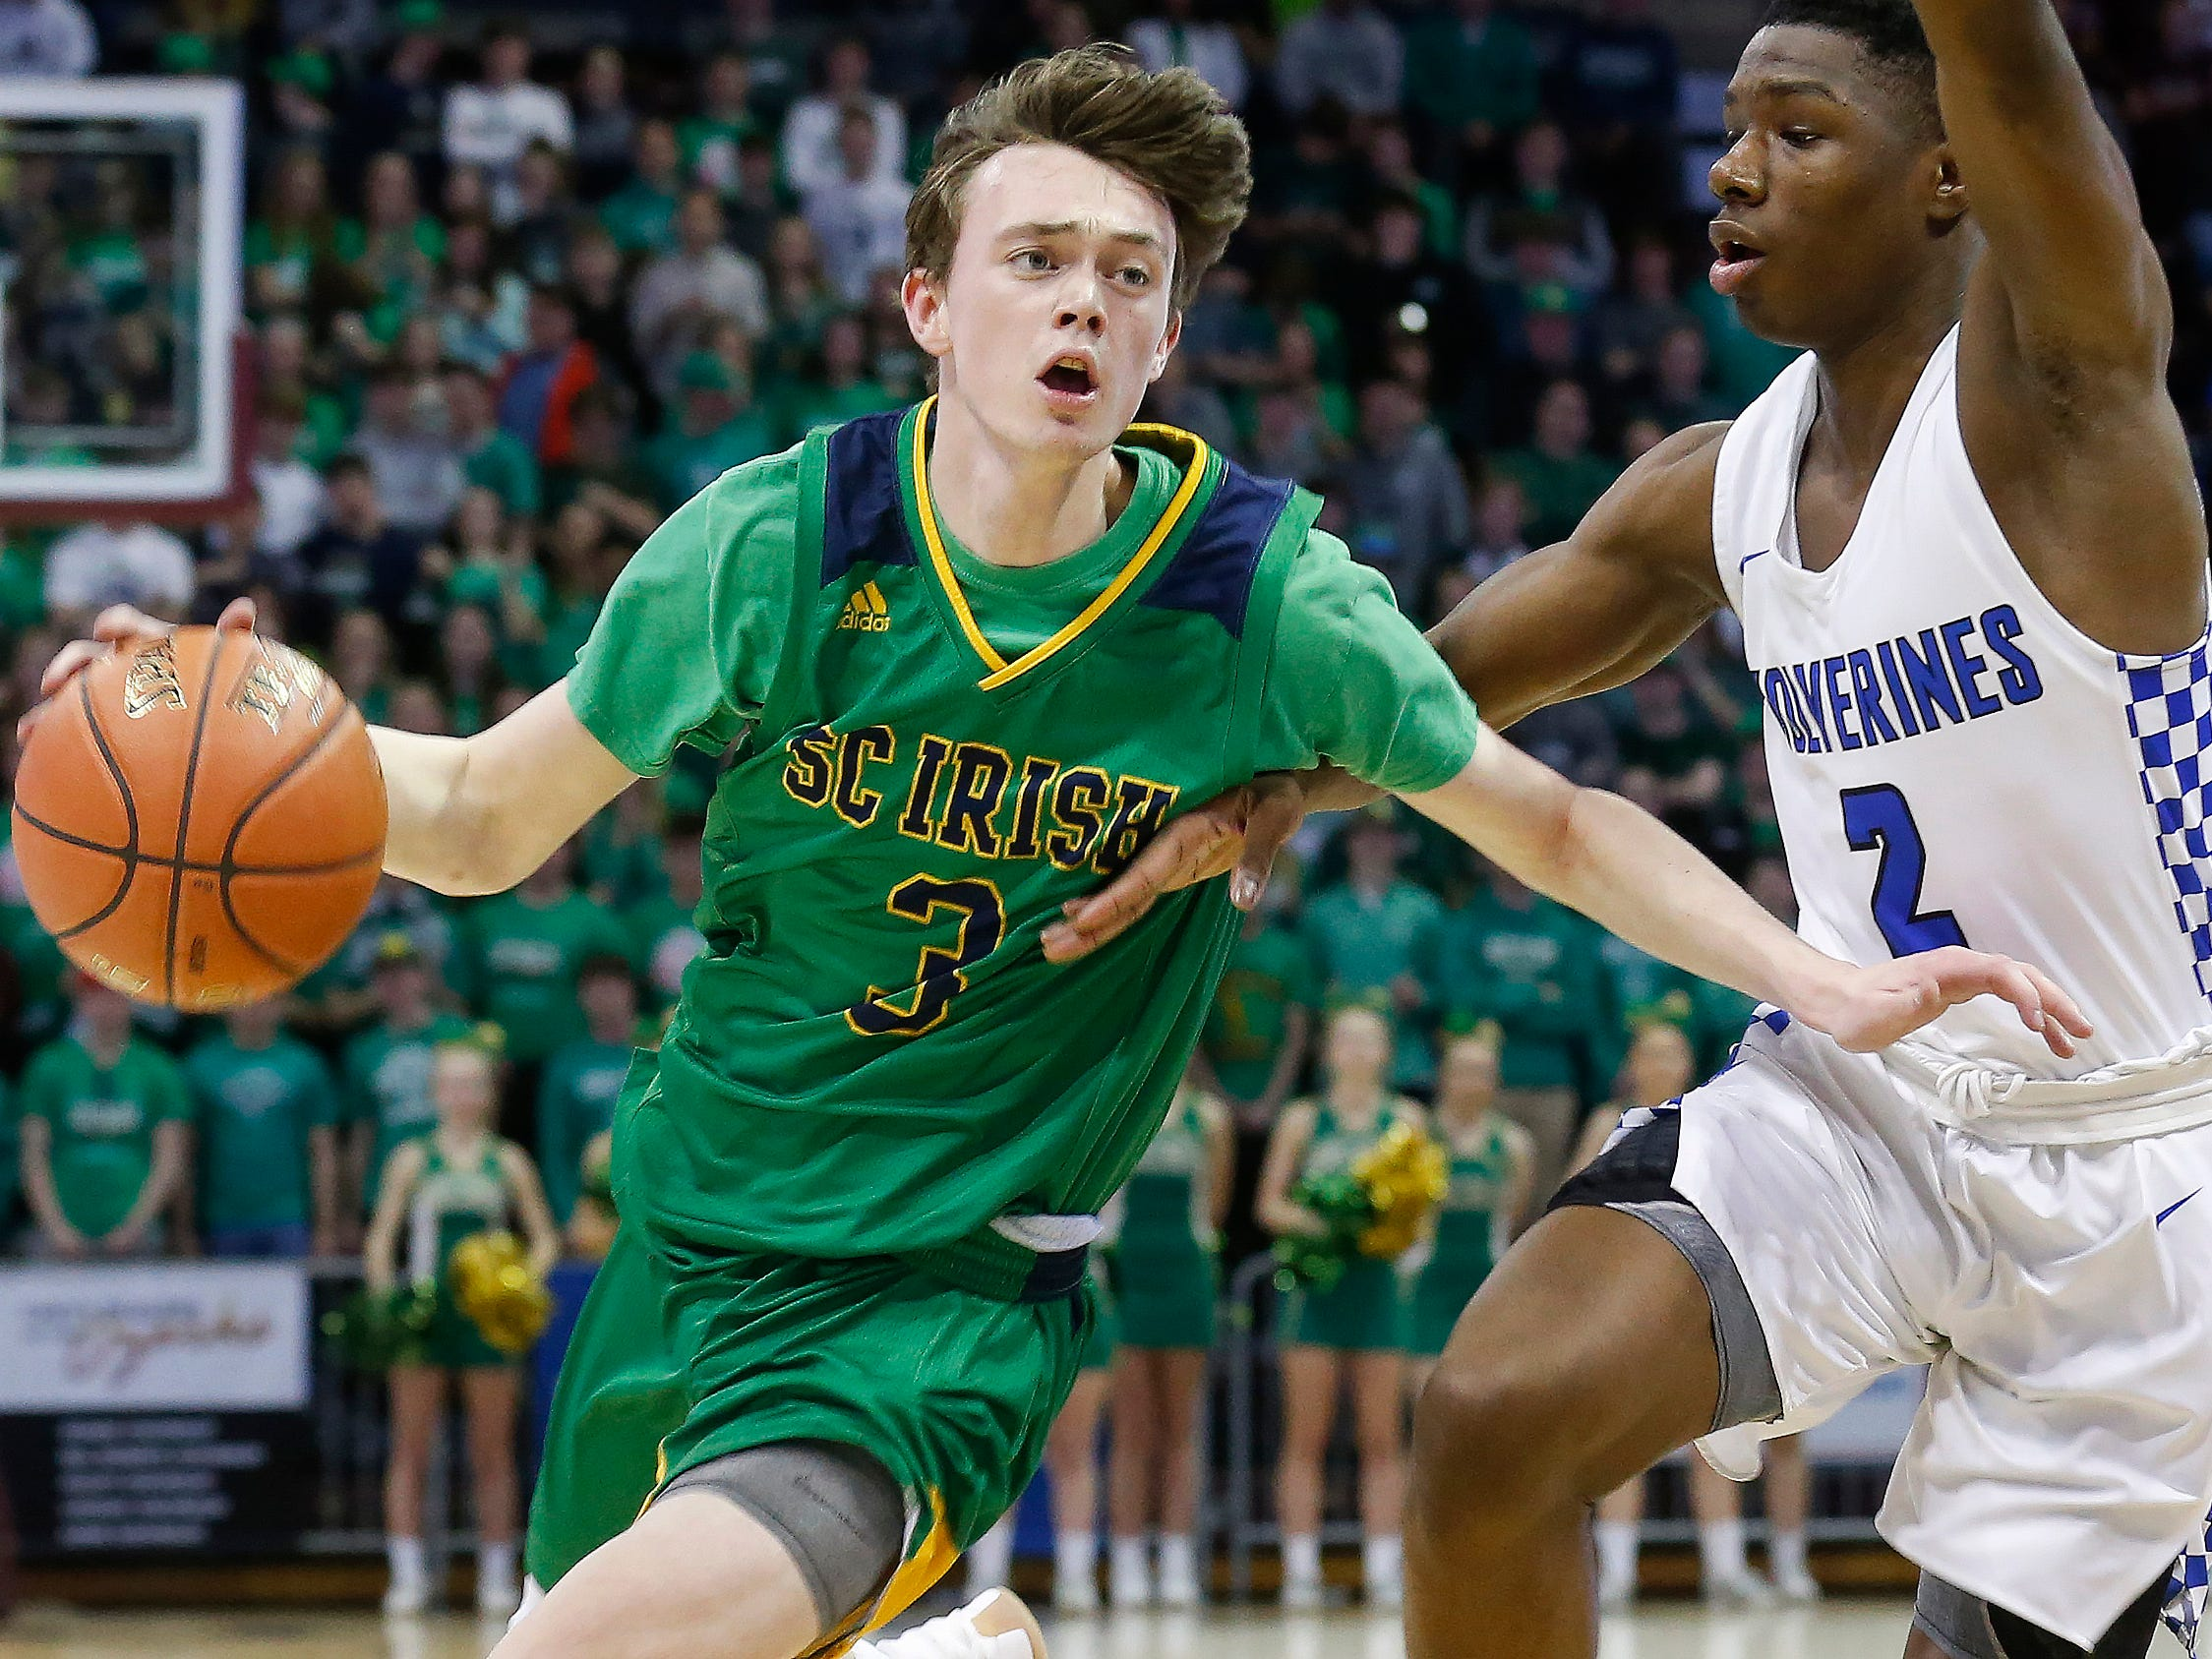 Jake Branham, of Springfield Catholic, brings the ball down the court during the Irish's 69-59 loss to Vashon in the Class 3 state championship game at JQH Arena on Friday, March 8, 2019.